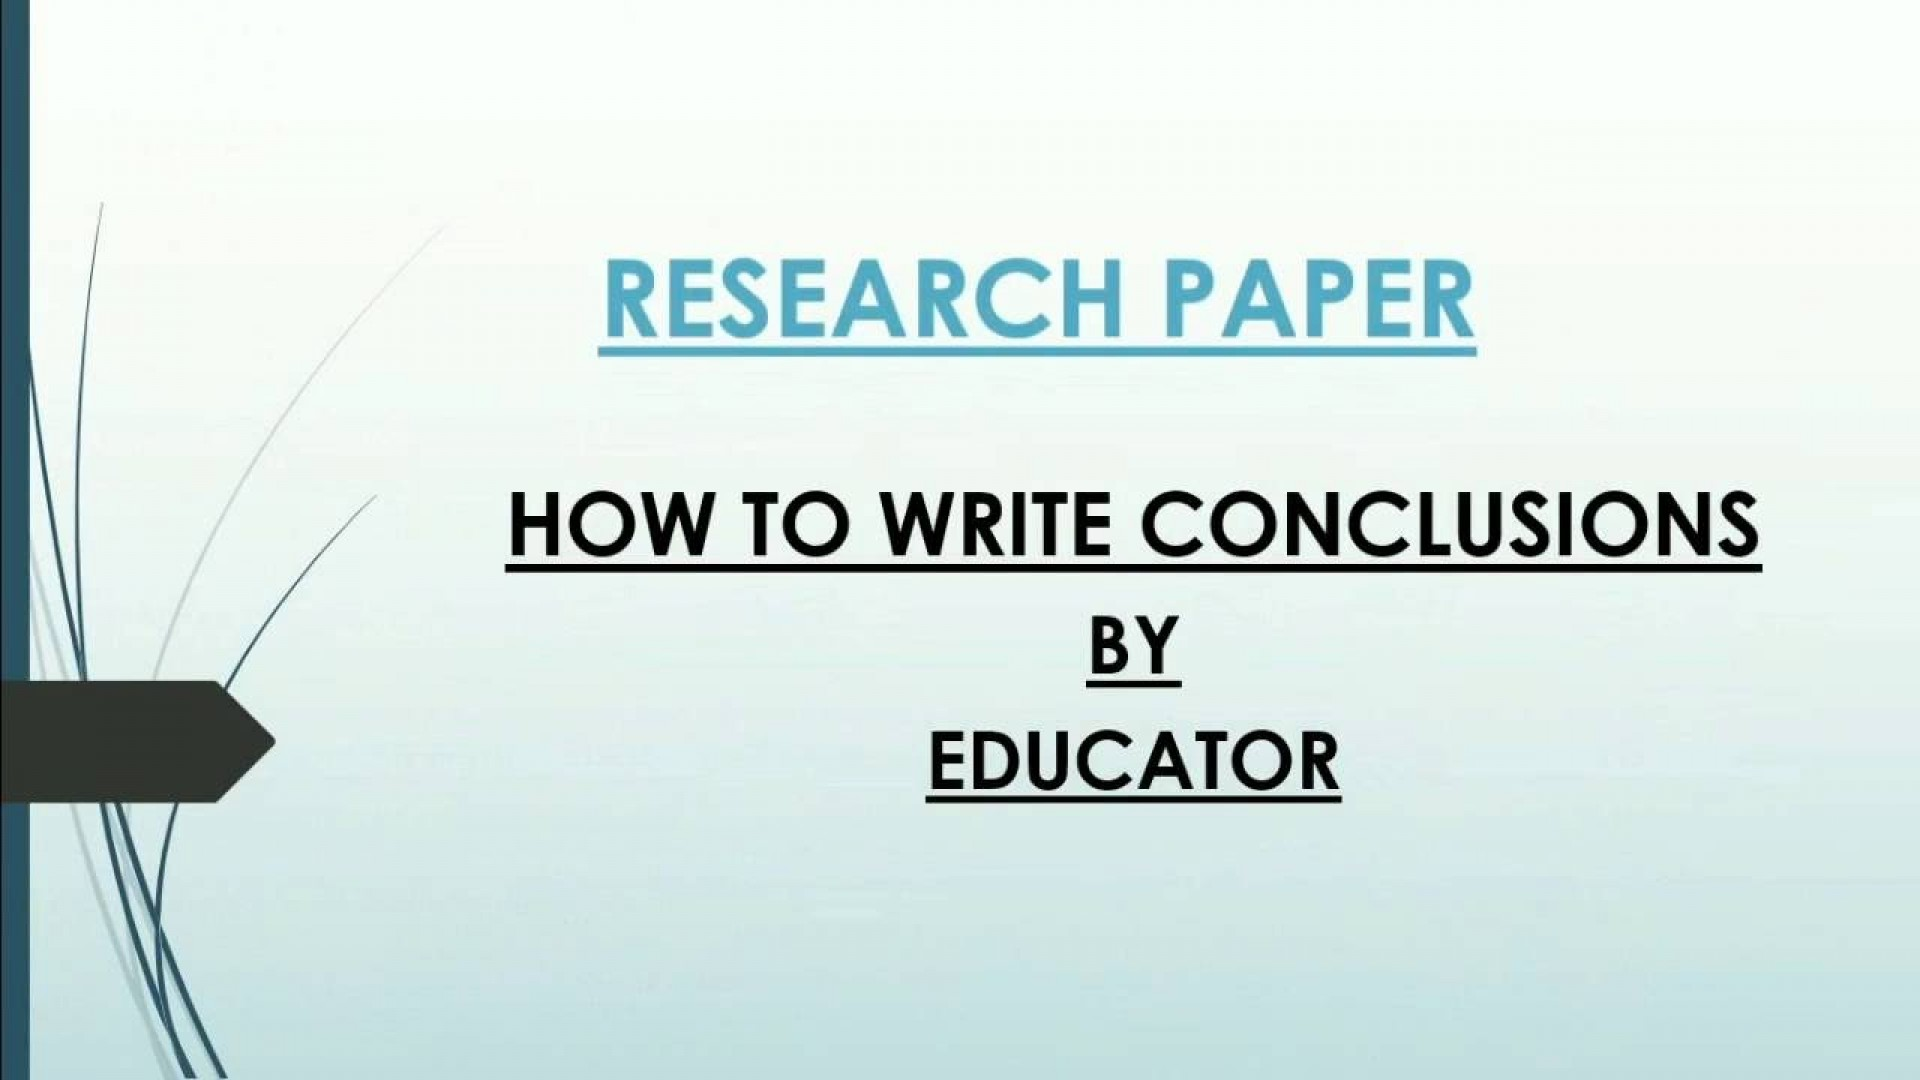 028 Maxresdefault Research Paper How To Frightening Write Conclusion Section Of A Topic Summary On Fast Food 1920